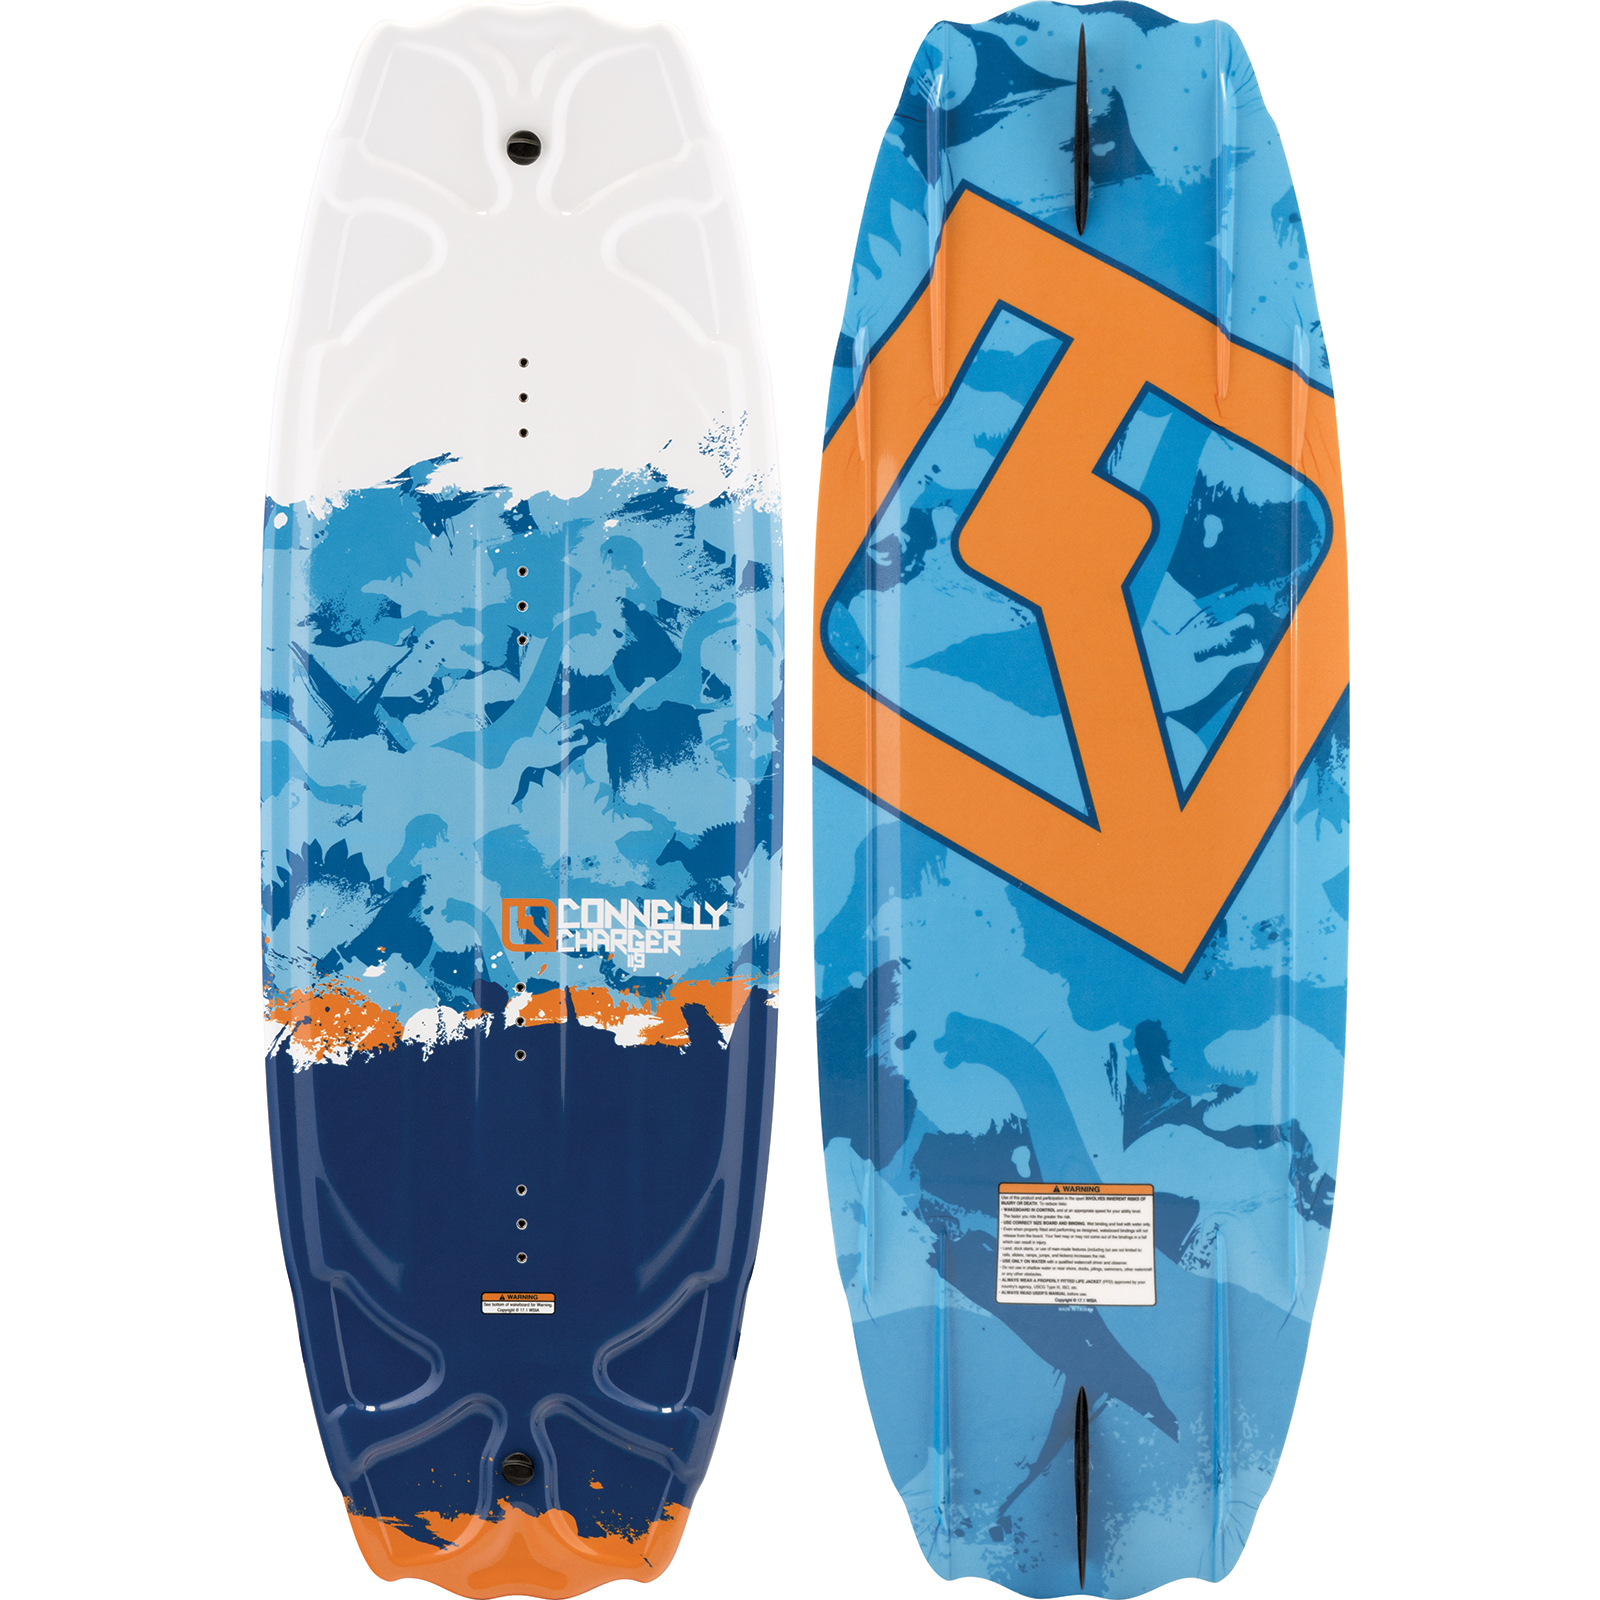 CHARGER 119 JR. WAKEBOARD CONNELLY 2018